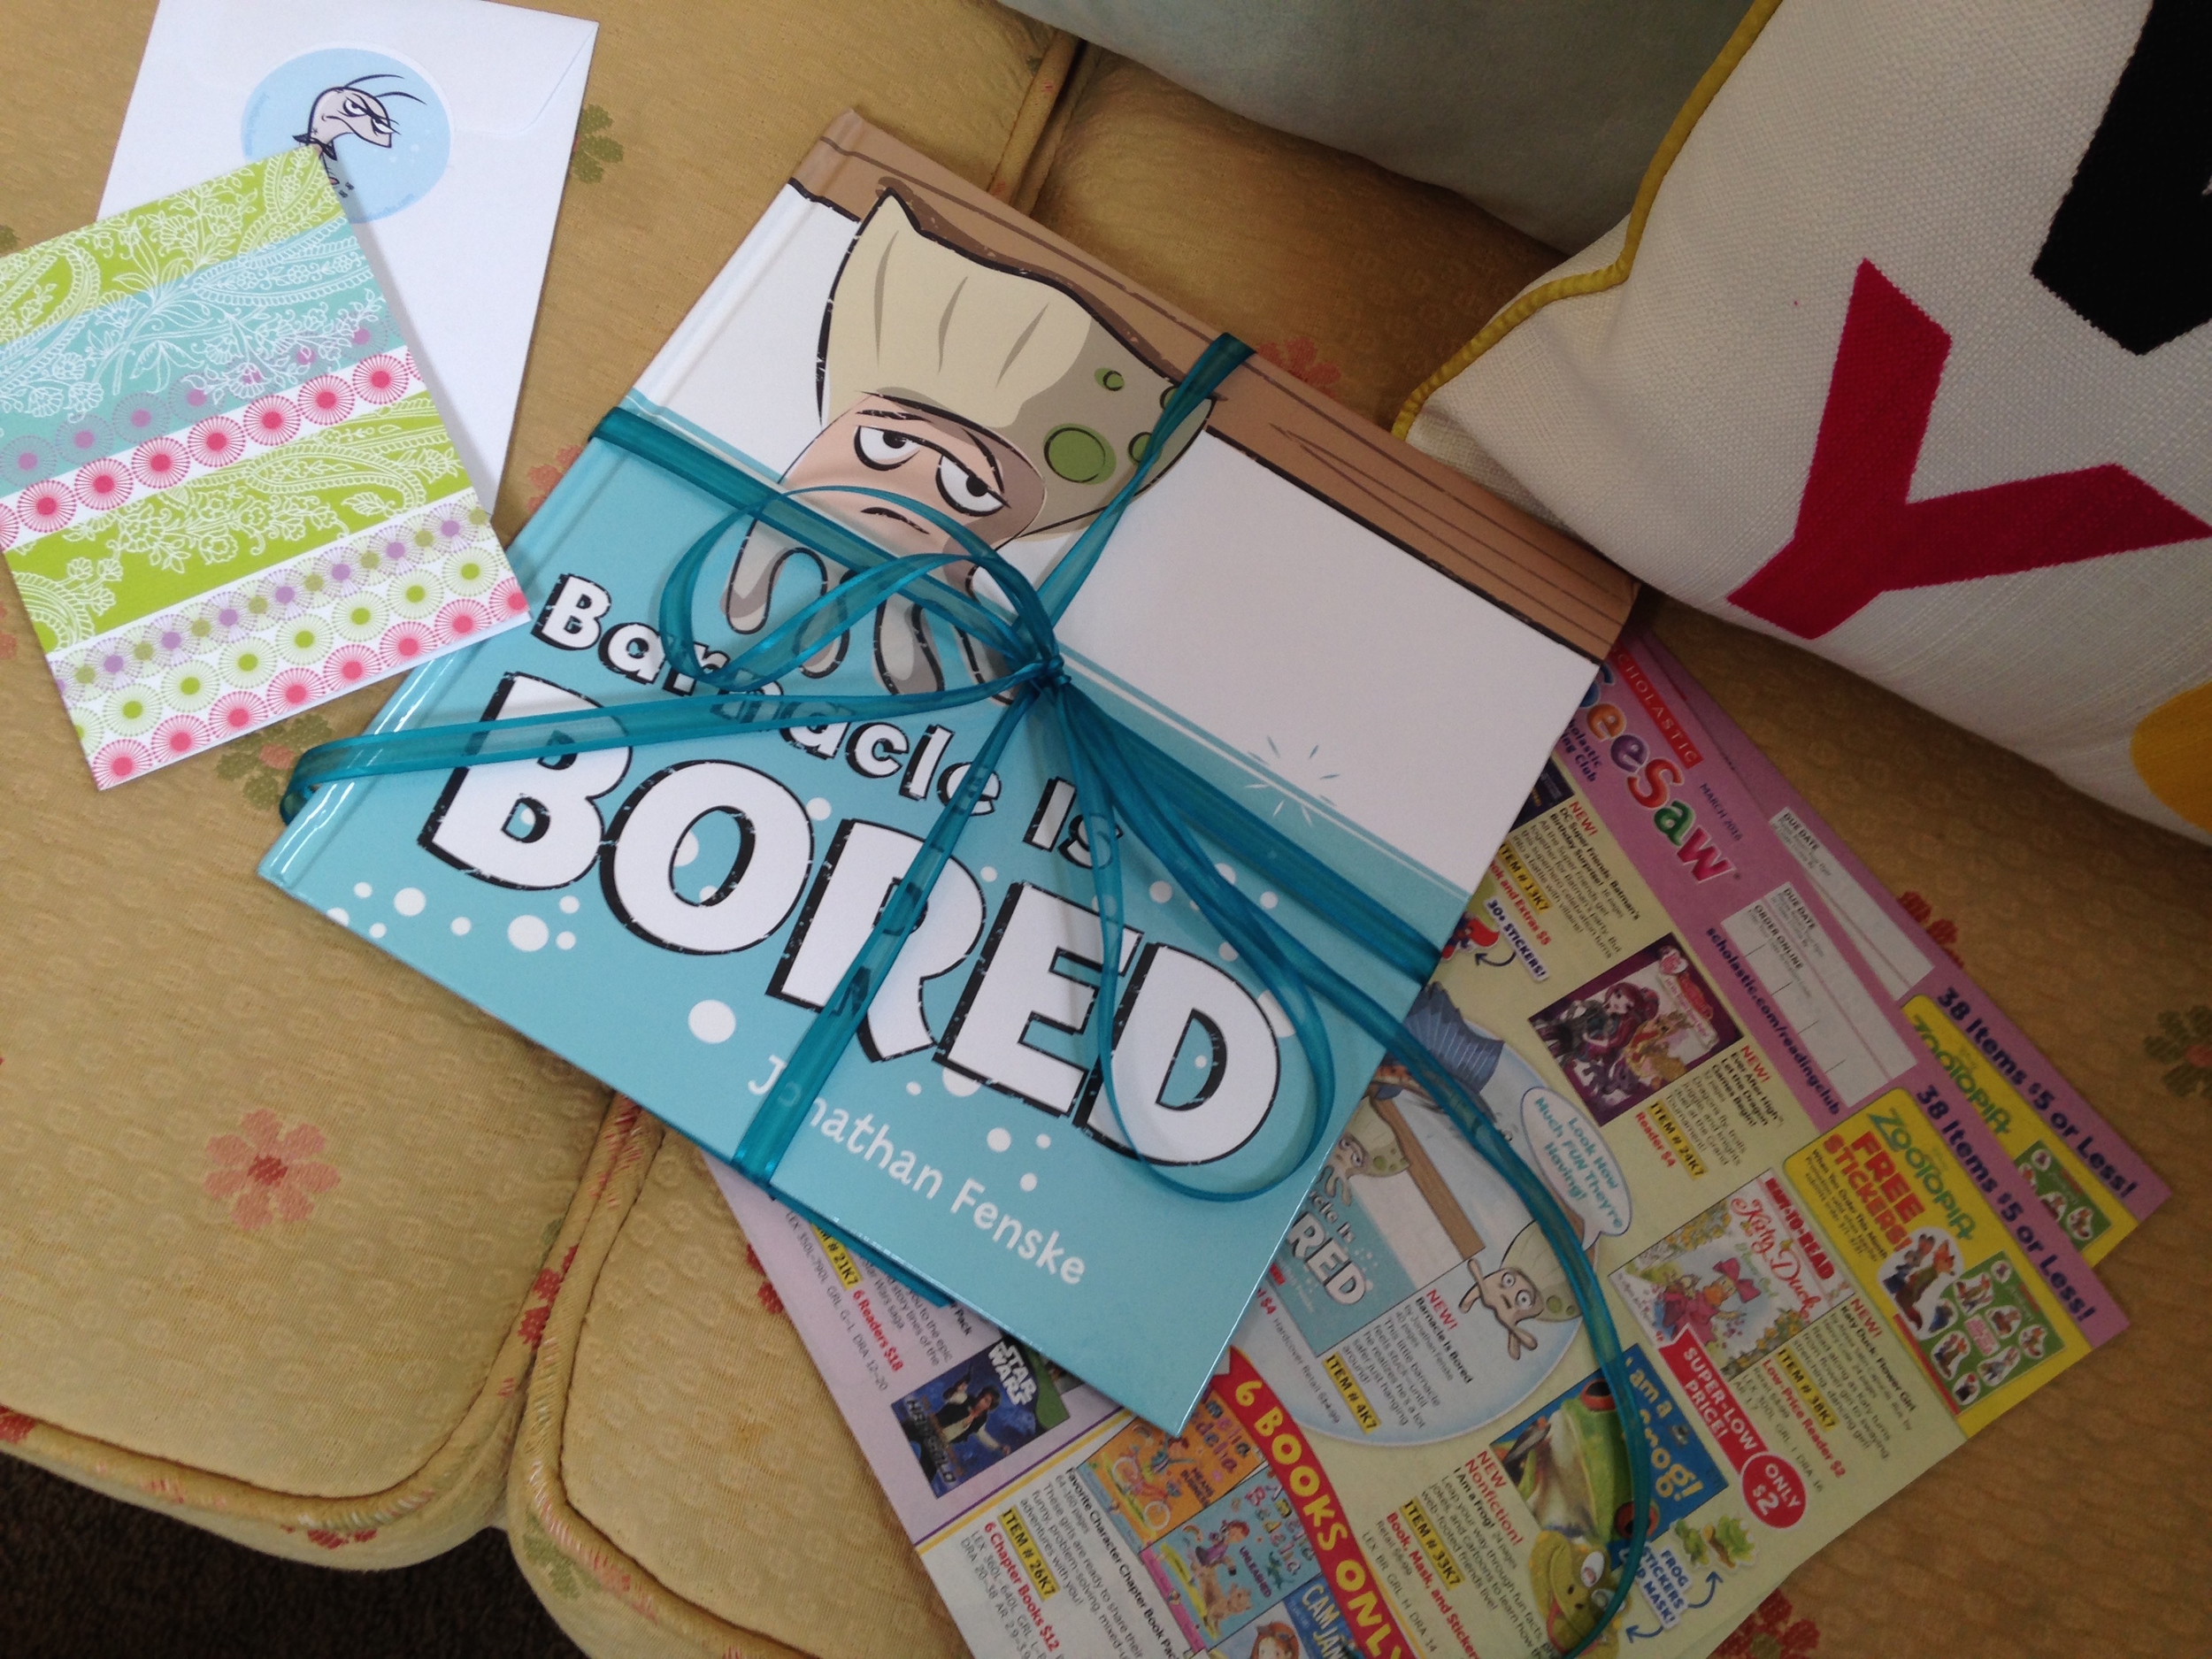 My editor at Scholastic, Katie Carella, sent me this fun package. We'd like to send you fun goodies in the mail, too! We're mailing buttons, postcards and softcover books.